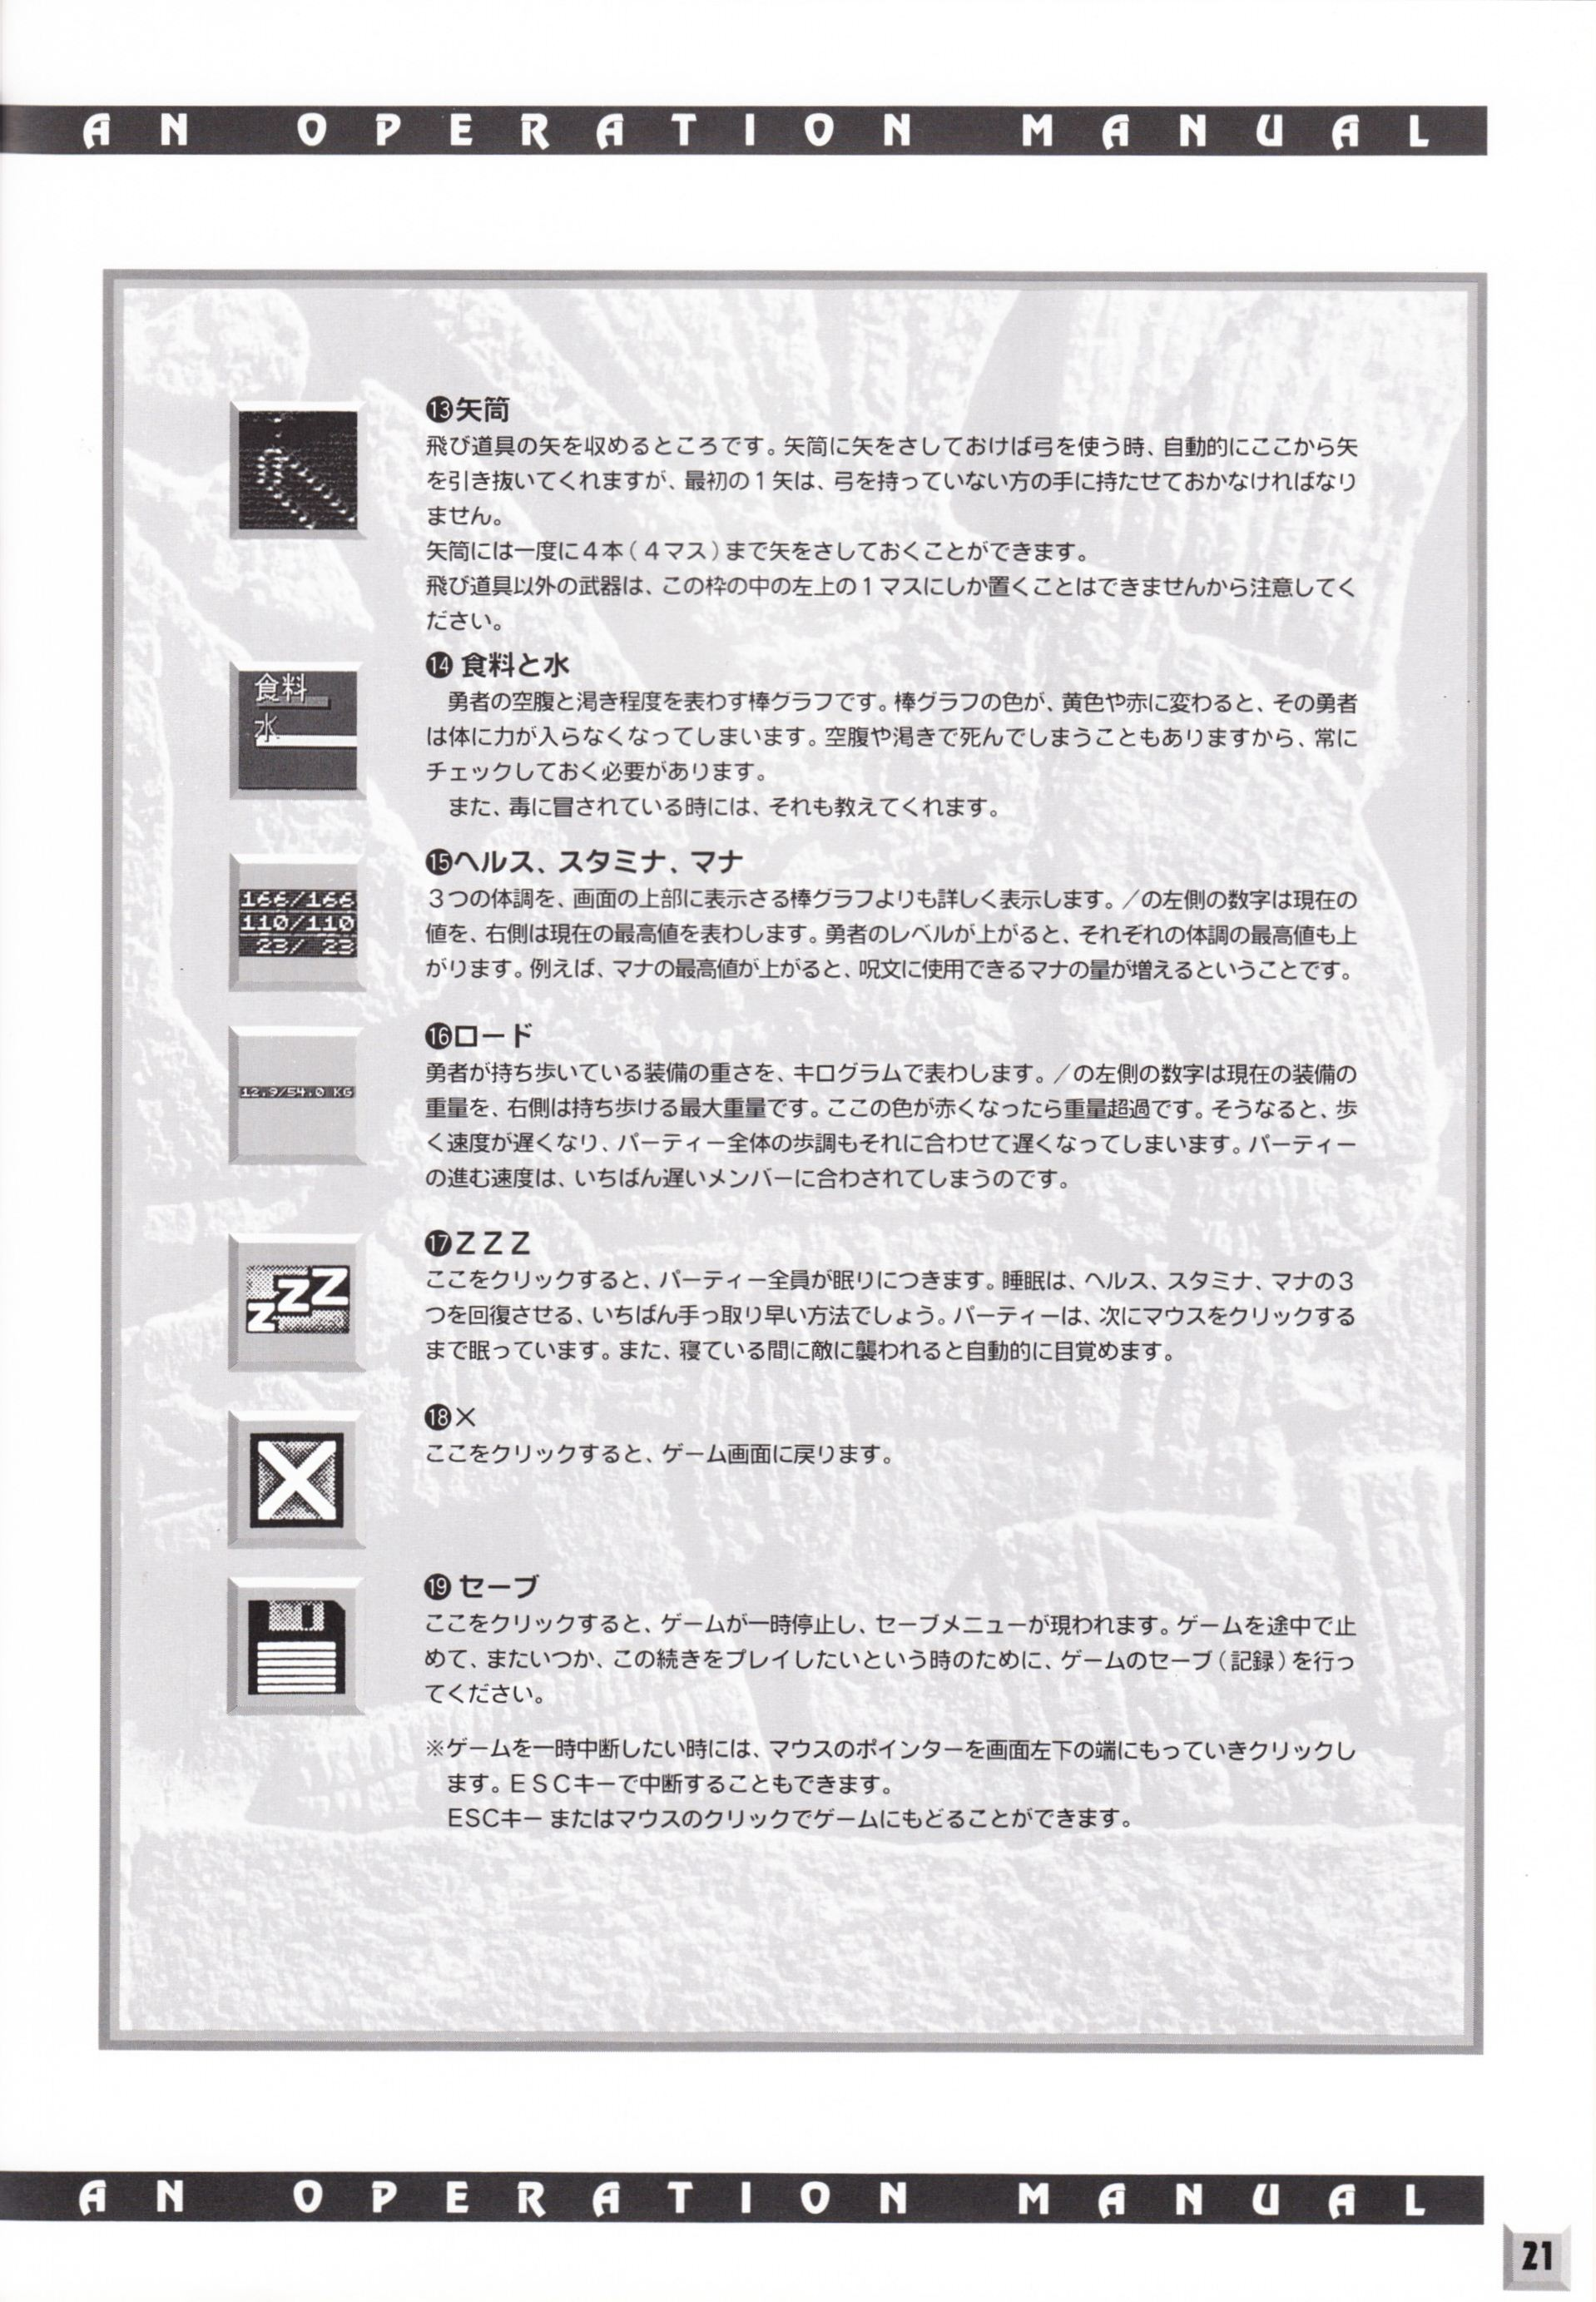 Game - Dungeon Master II - JP - PC-9801 - 3.5-inch - An Operation Manual - Page 023 - Scan